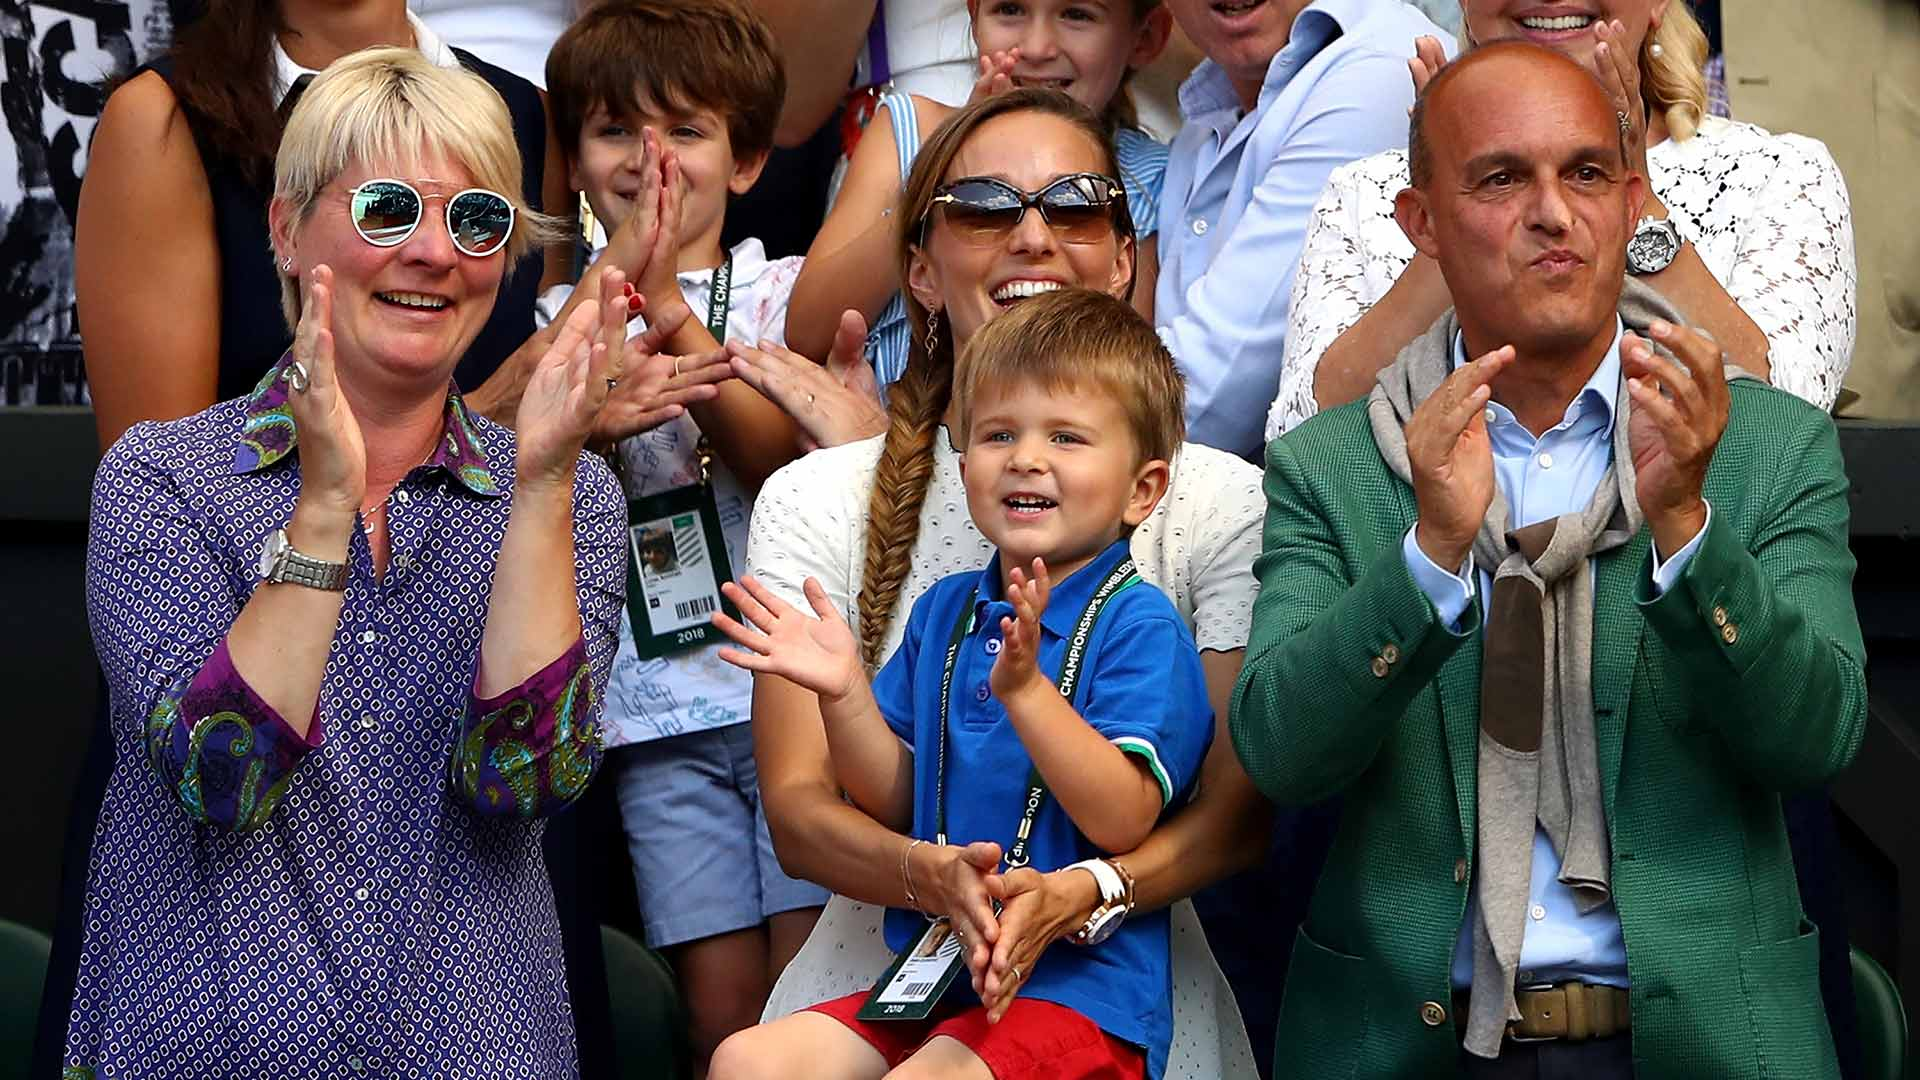 'Daddy! Daddy!': @DjokerNole's favourite #Wimbledon cheer  More ➡️ https://t.co/XBlTWFYGw4 #ATP https://t.co/DqTwLDJpCf